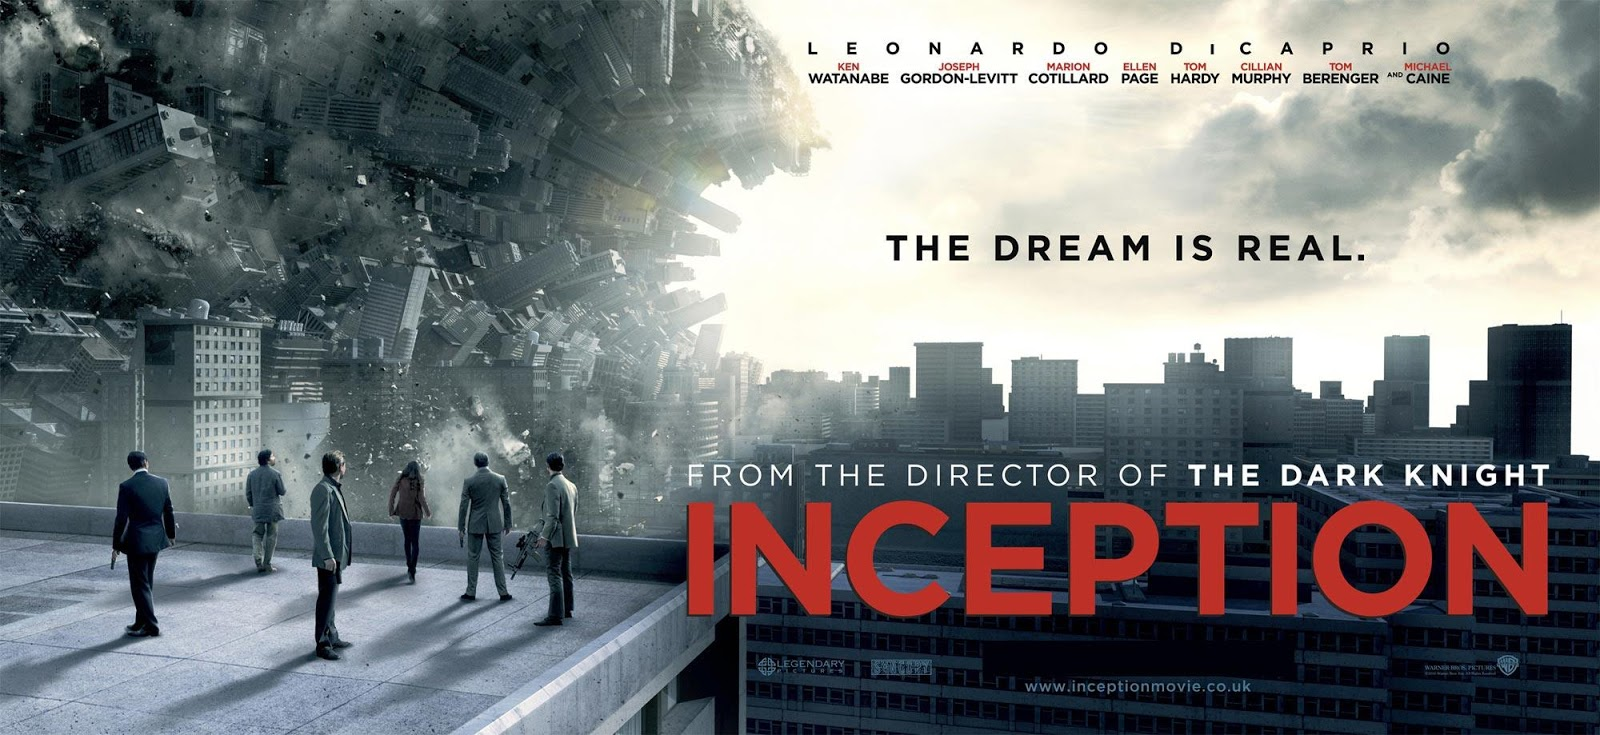 Inception 2010 Full Movie 720p Inception 2010 Full Movie 720p Download Mediafire Movies 1600x735 Movie-index.com